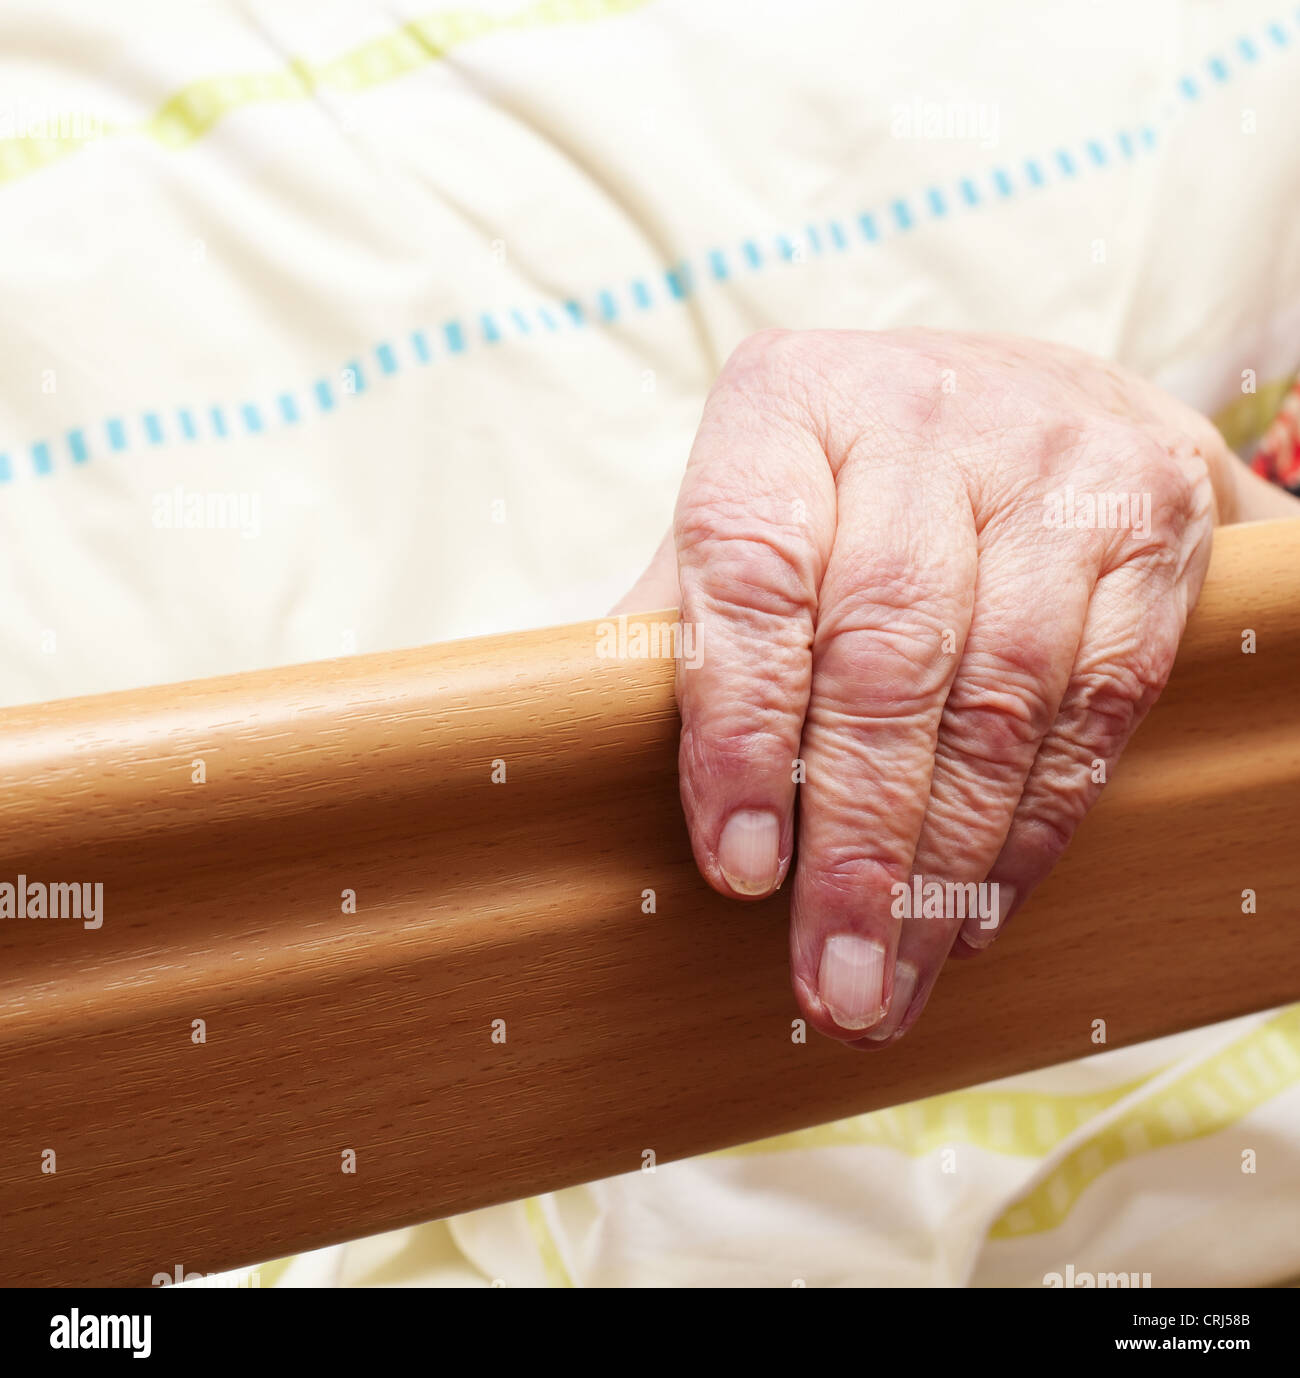 Care-dependent person lying in bed. - Stock Image